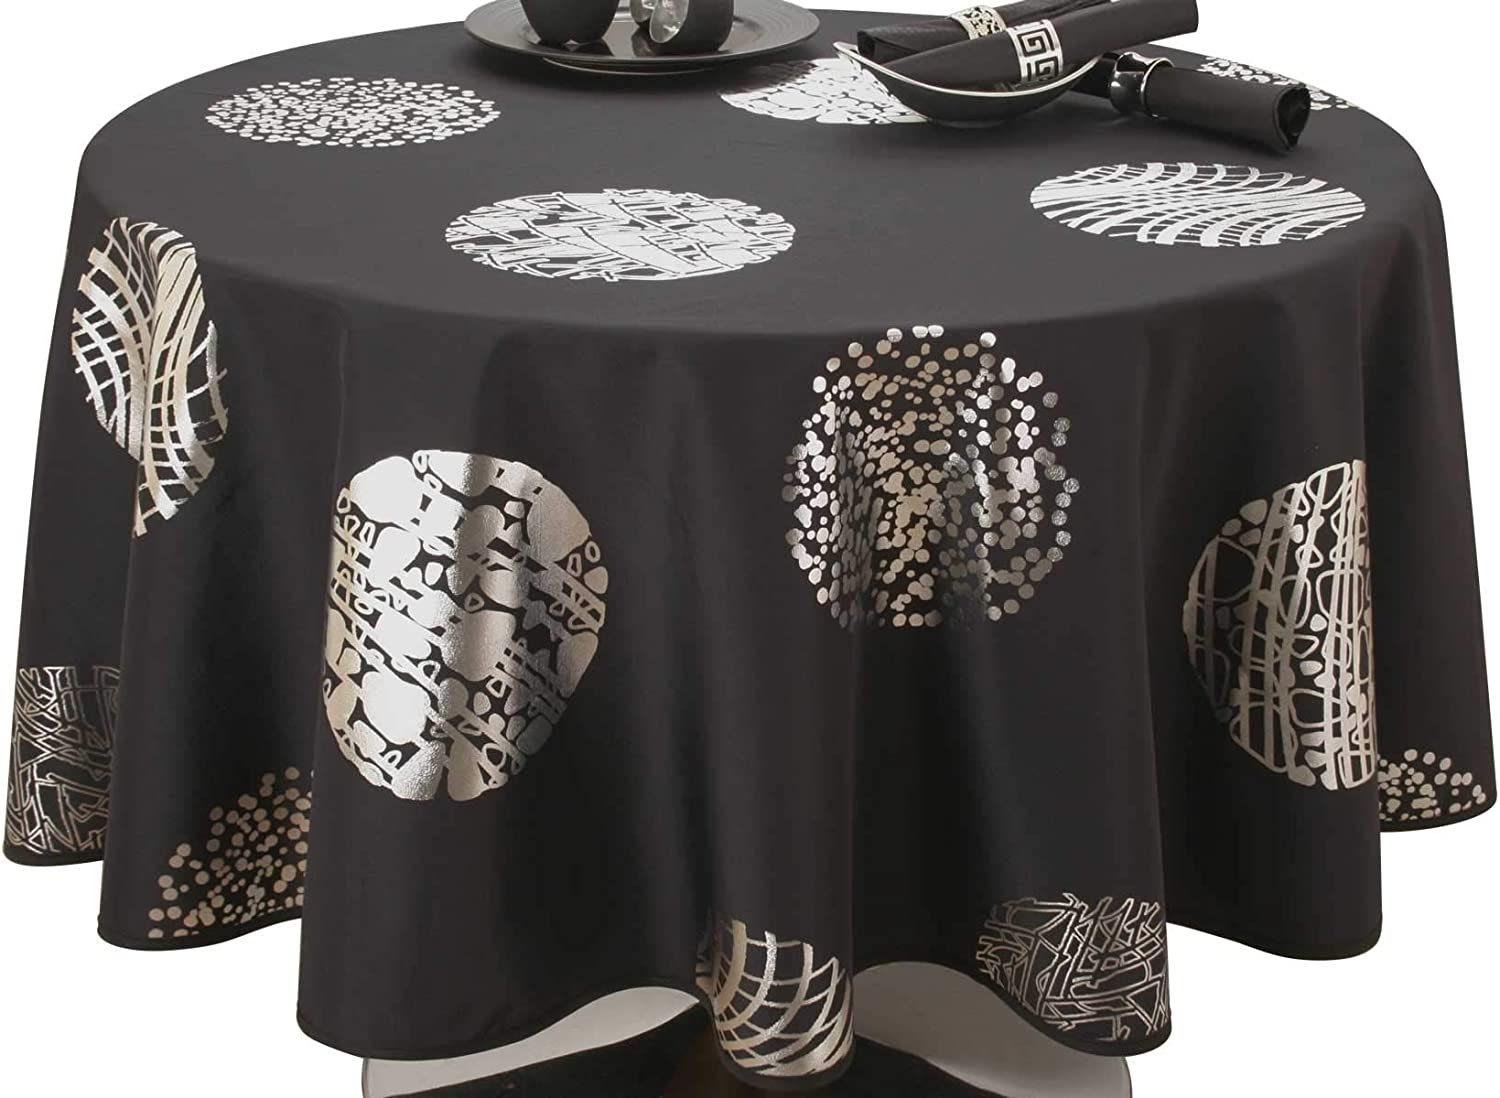 Easy care Cosmos Dark grey Tablecloth Rectangular 60x138 inch